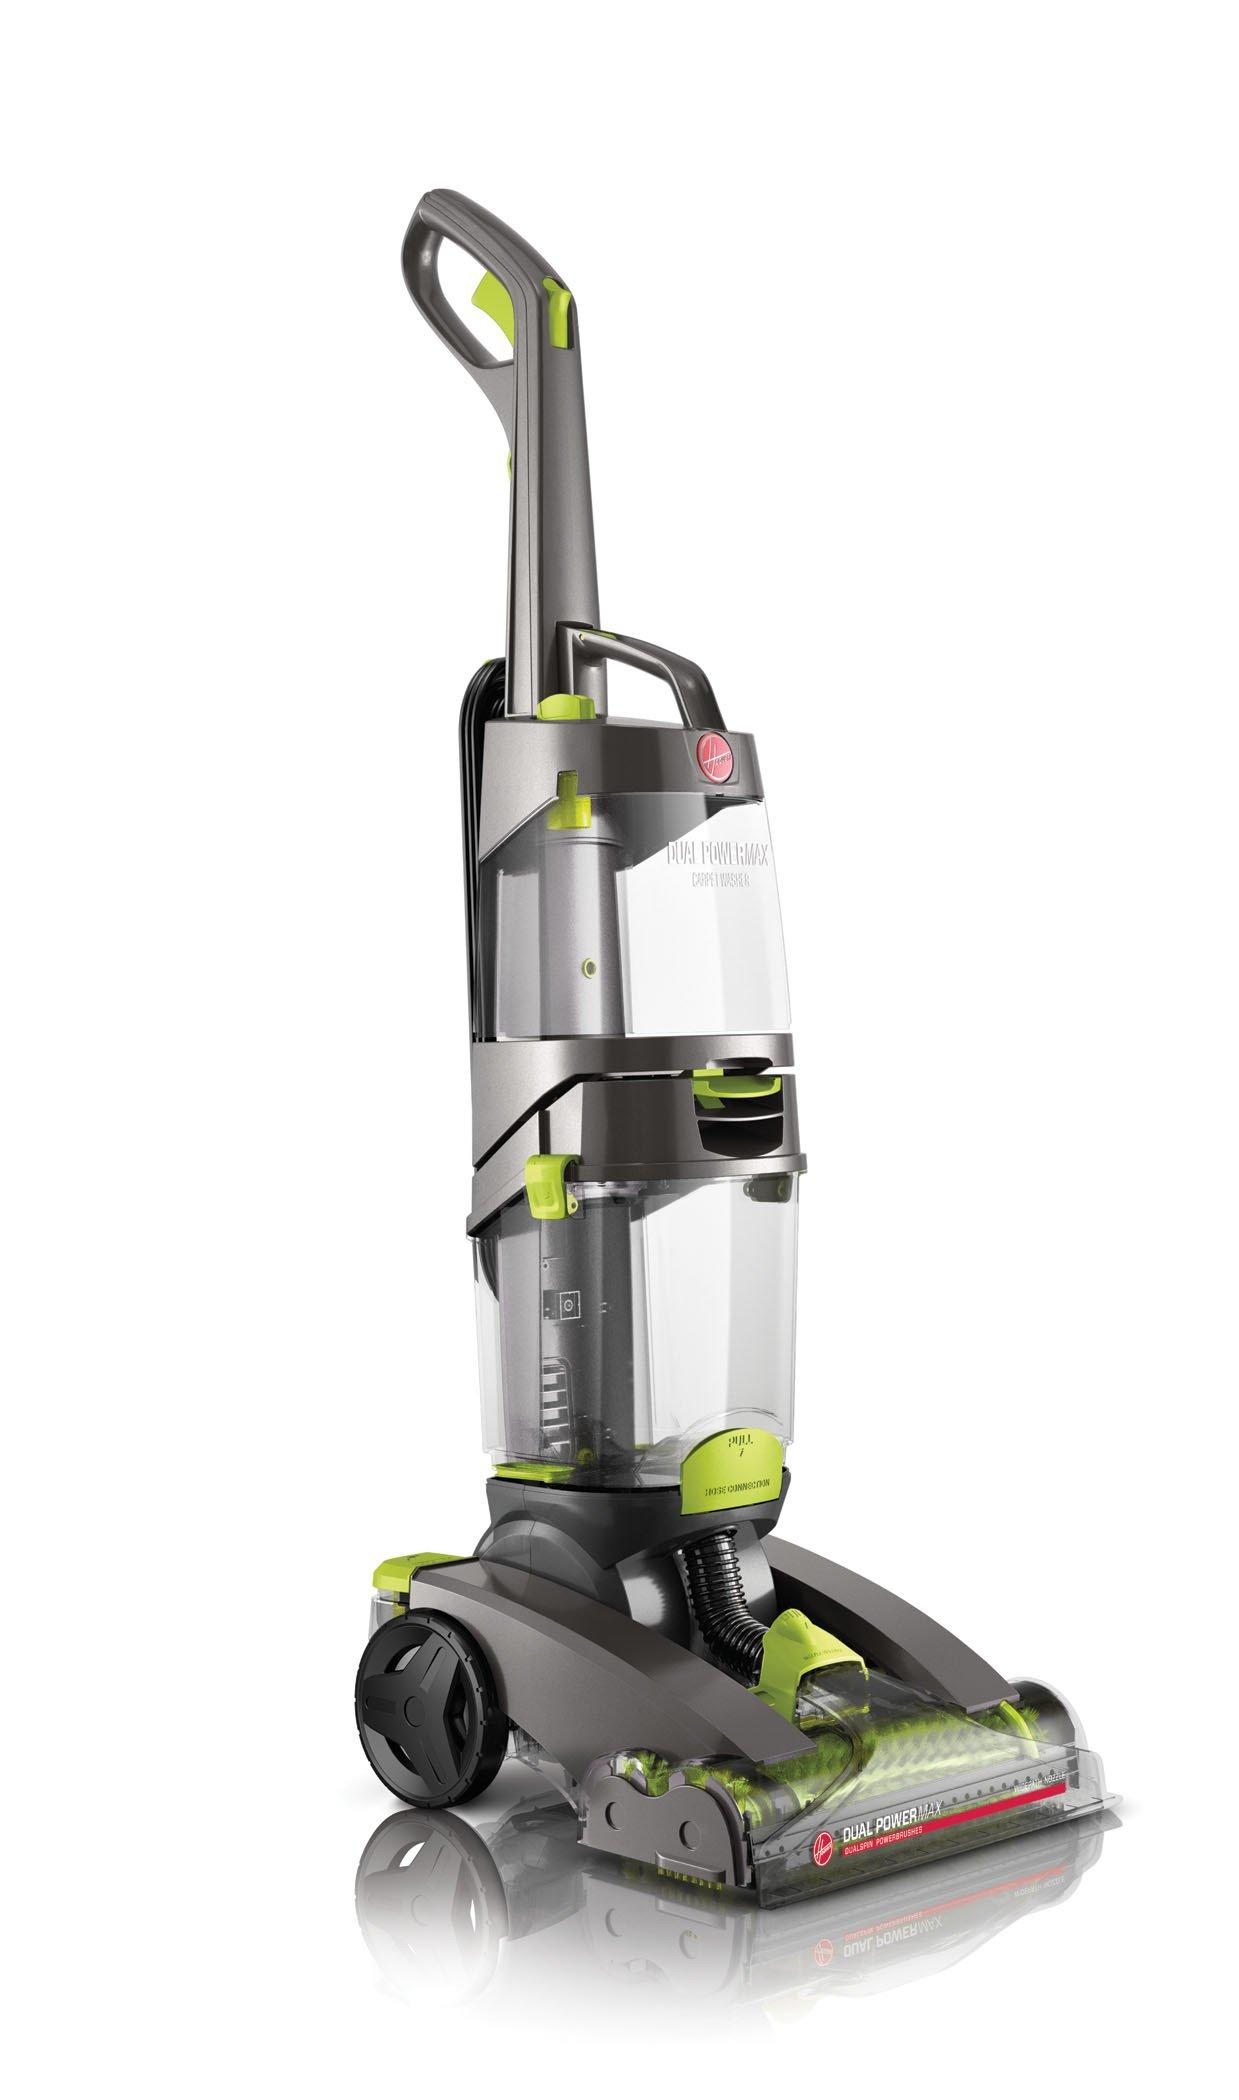 Details About Hoover Dual Powermax Carpet Cleaner Refurbished Fh51000rm